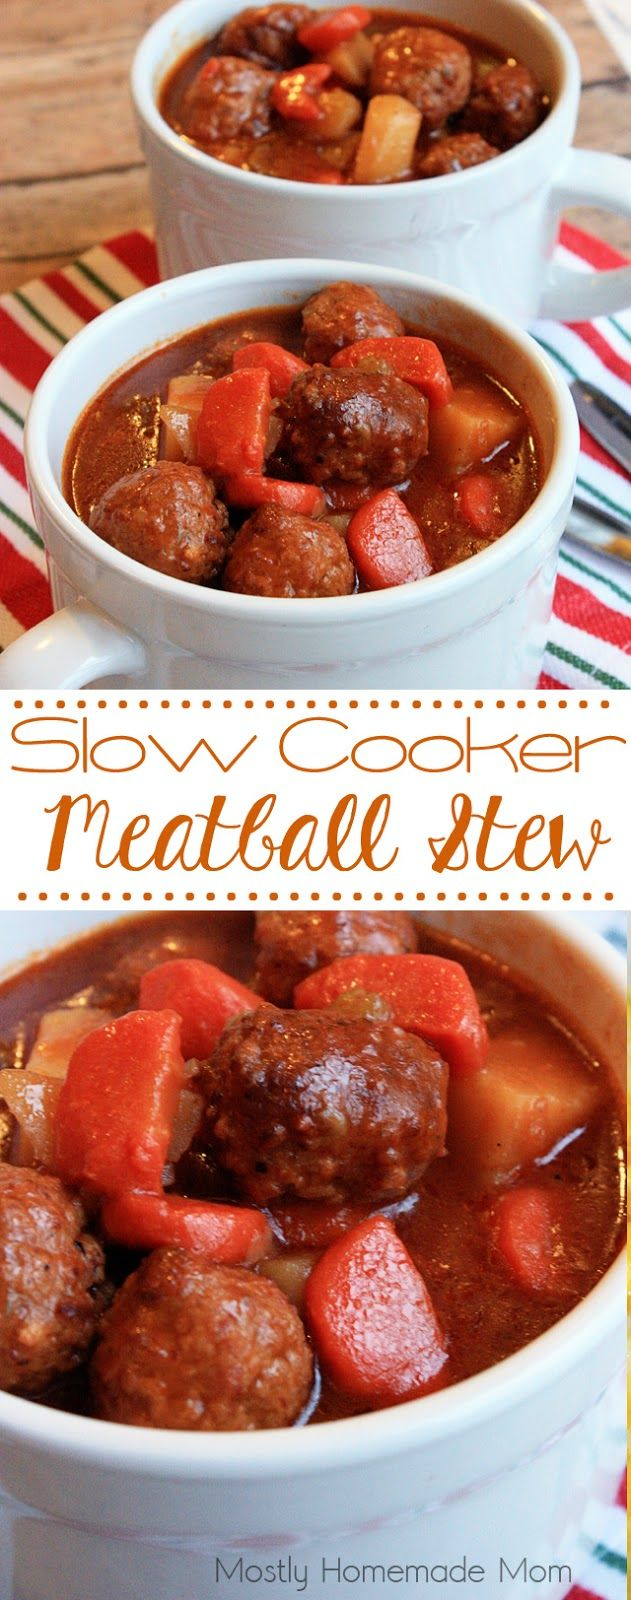 Slow Cooker Meatball Stew - Carrots, celery, potatoes and meatballs with a delicious broth, prepared in the Crockpot! A perfect meal for a chilly night!